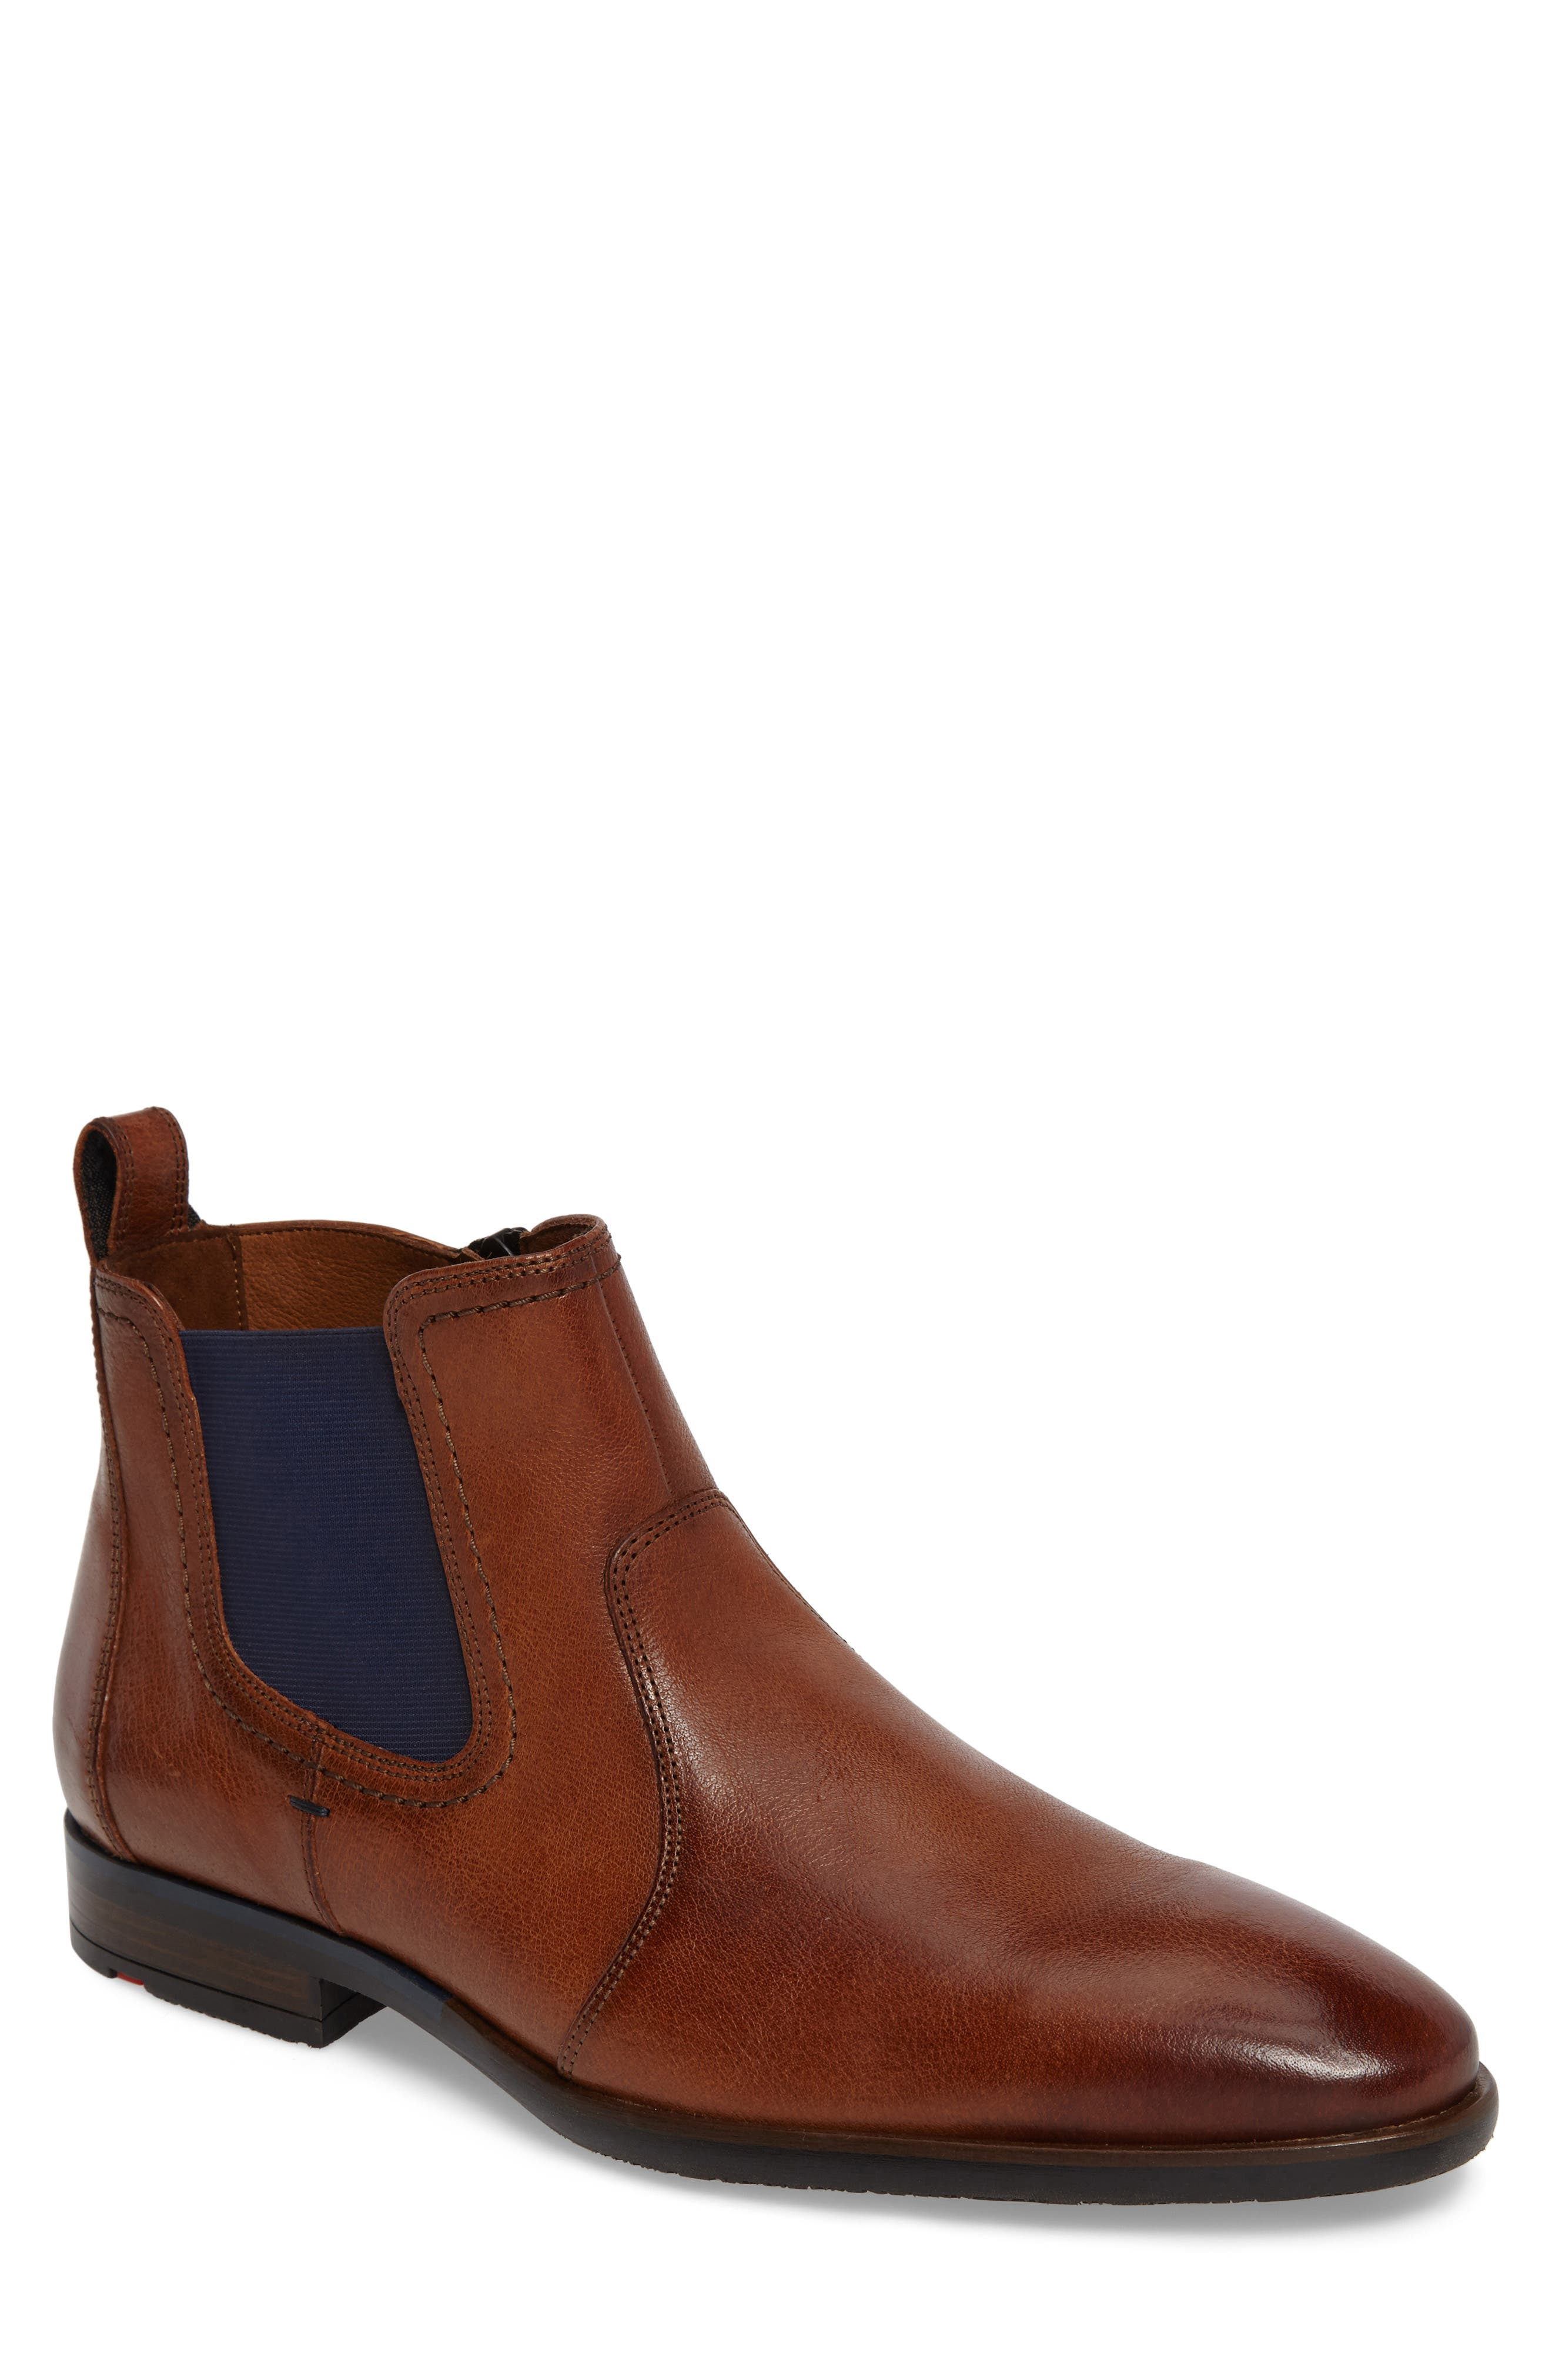 Dylan Chelsea Boot,                             Main thumbnail 1, color,                             Brown Leather